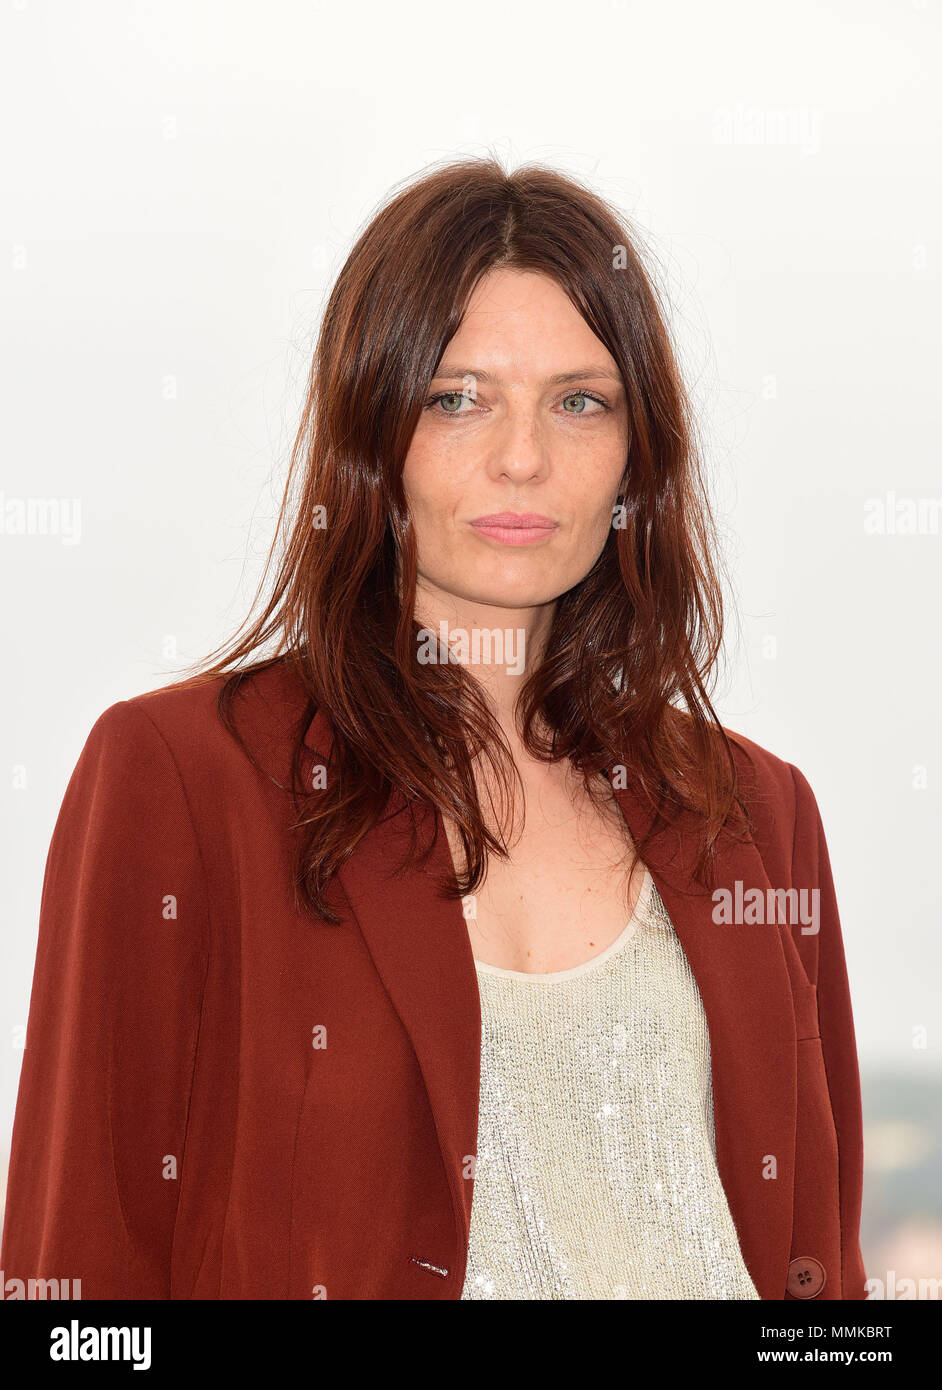 Cannes, France. 12th May 2018. Vanessa Fillho  attending Photocall for GUEULE D' ANGE   at Cannes Film Feadistival 12th May 2018 Credit: Peter Phillips/Alamy Live News Stock Photo